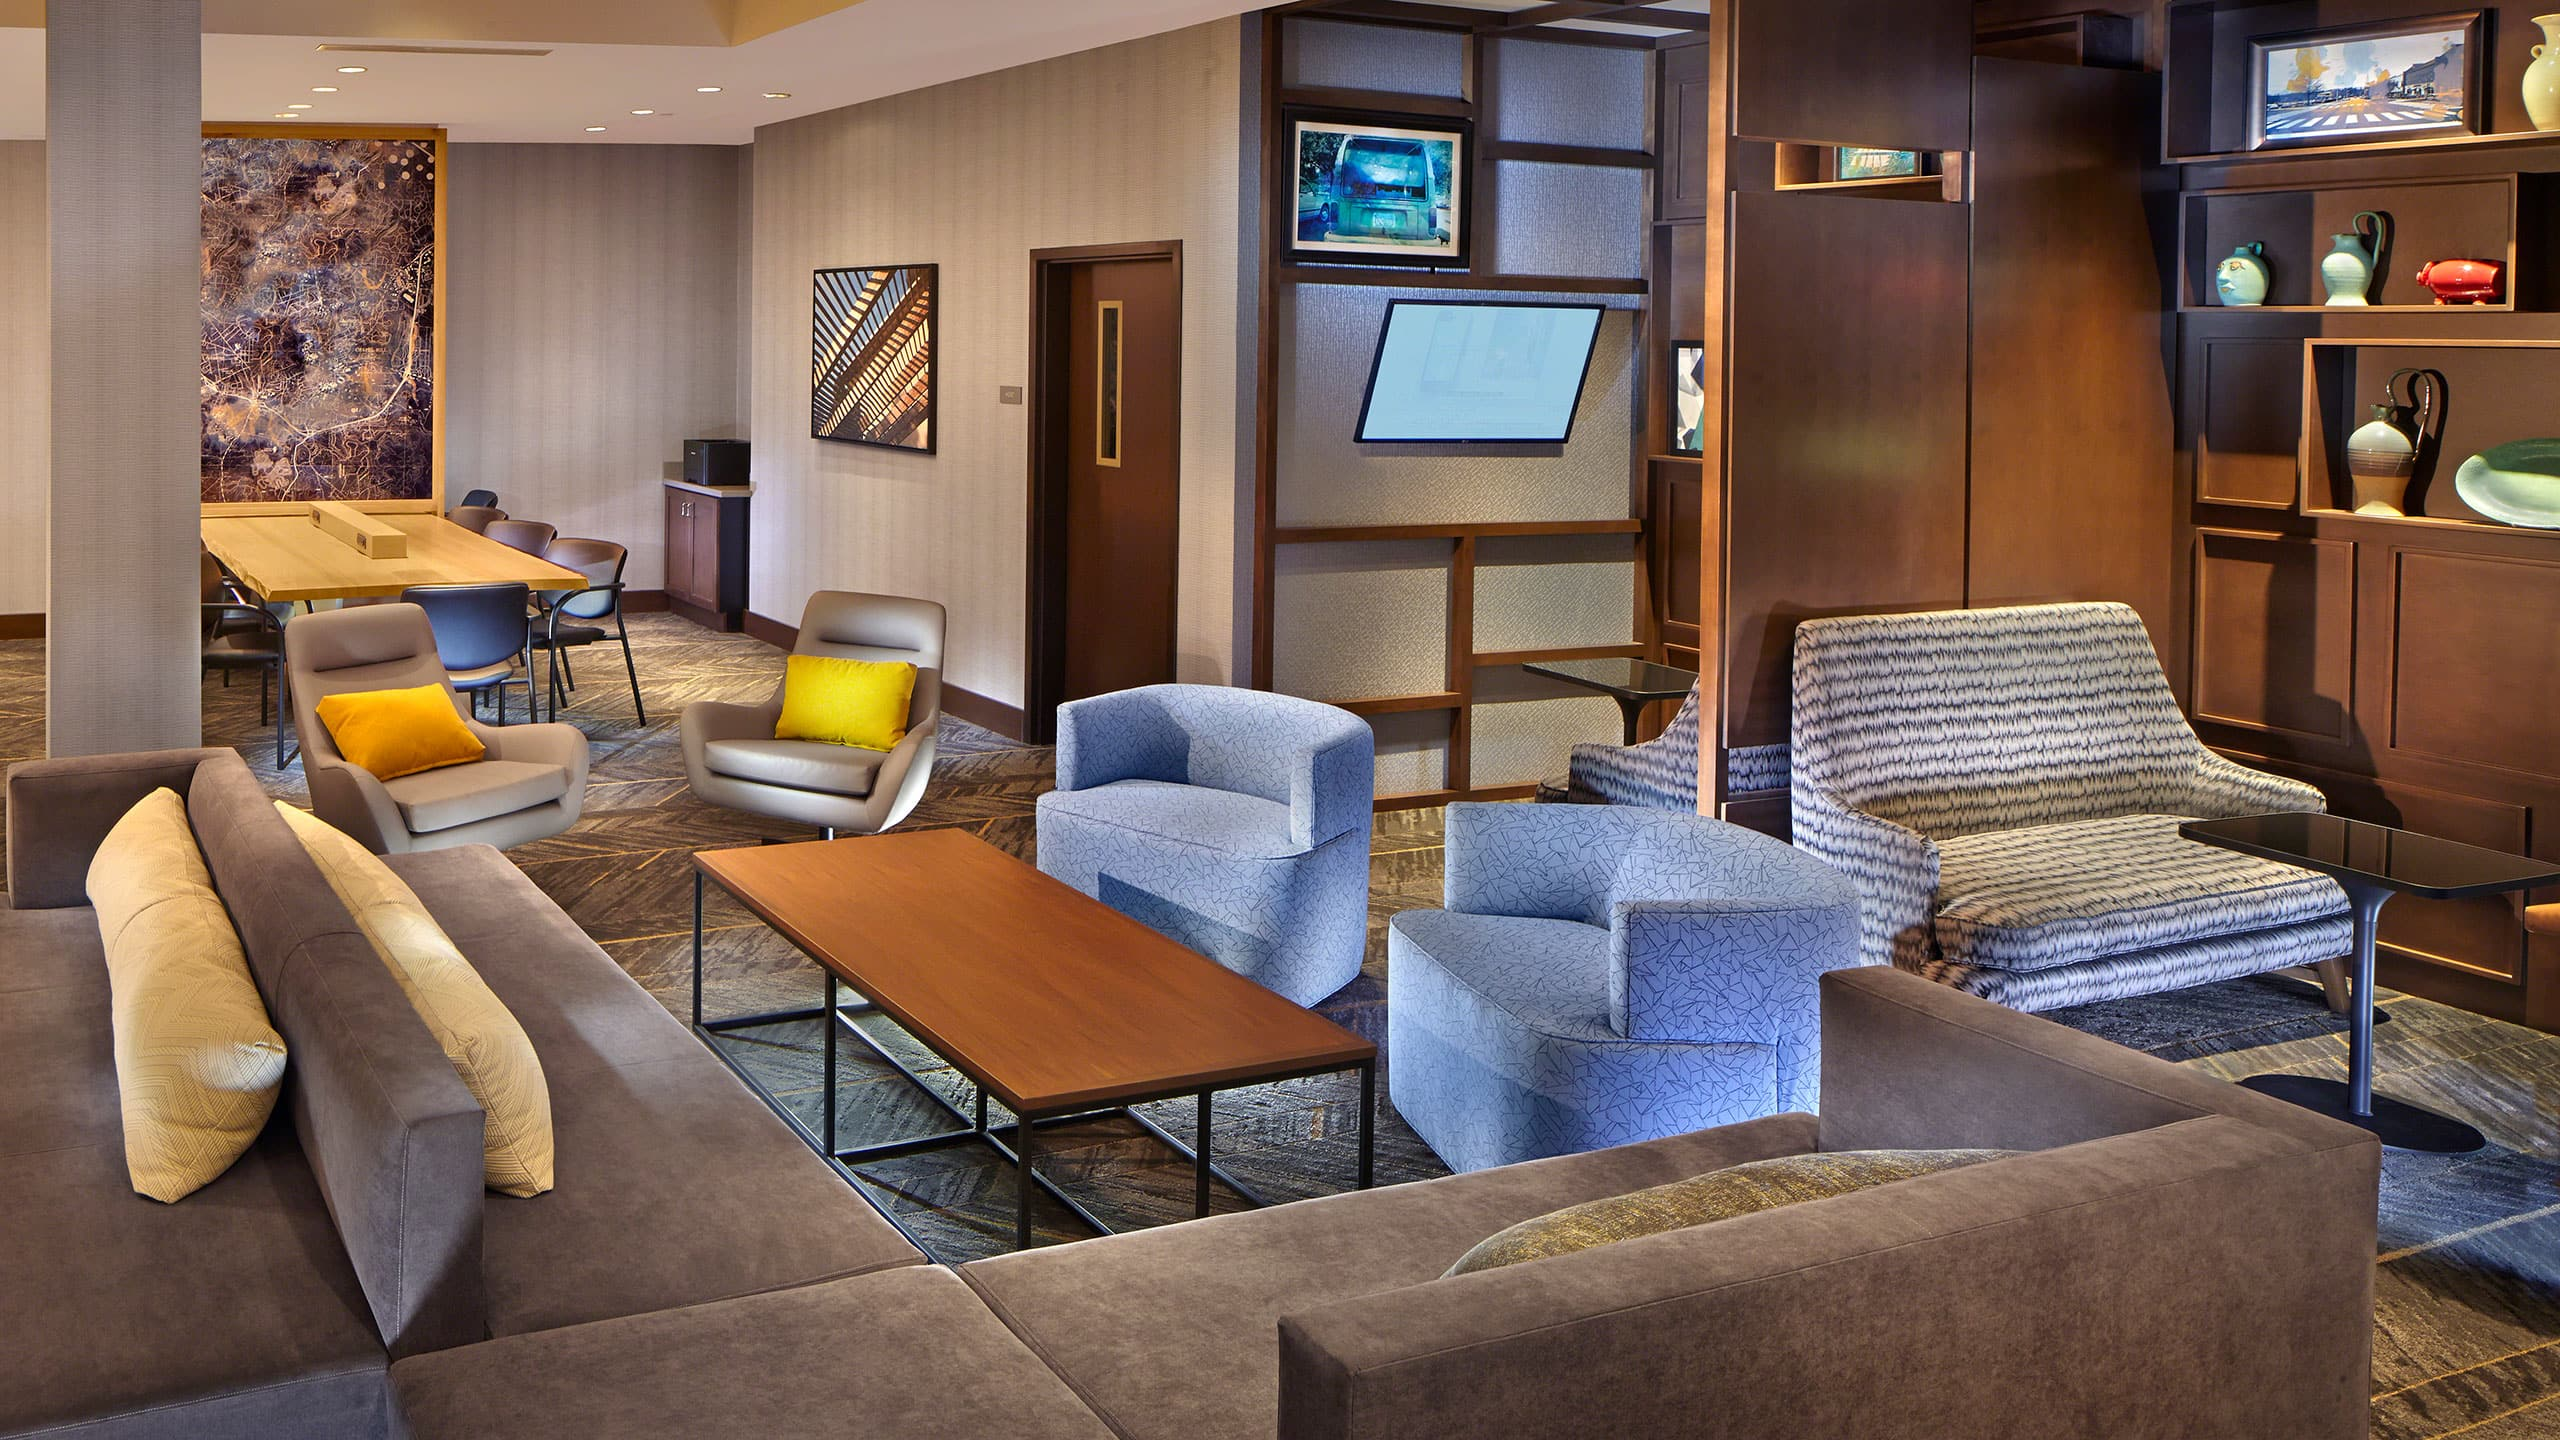 Upscale Hotel Near The University Of North Carolina Hyatt Place